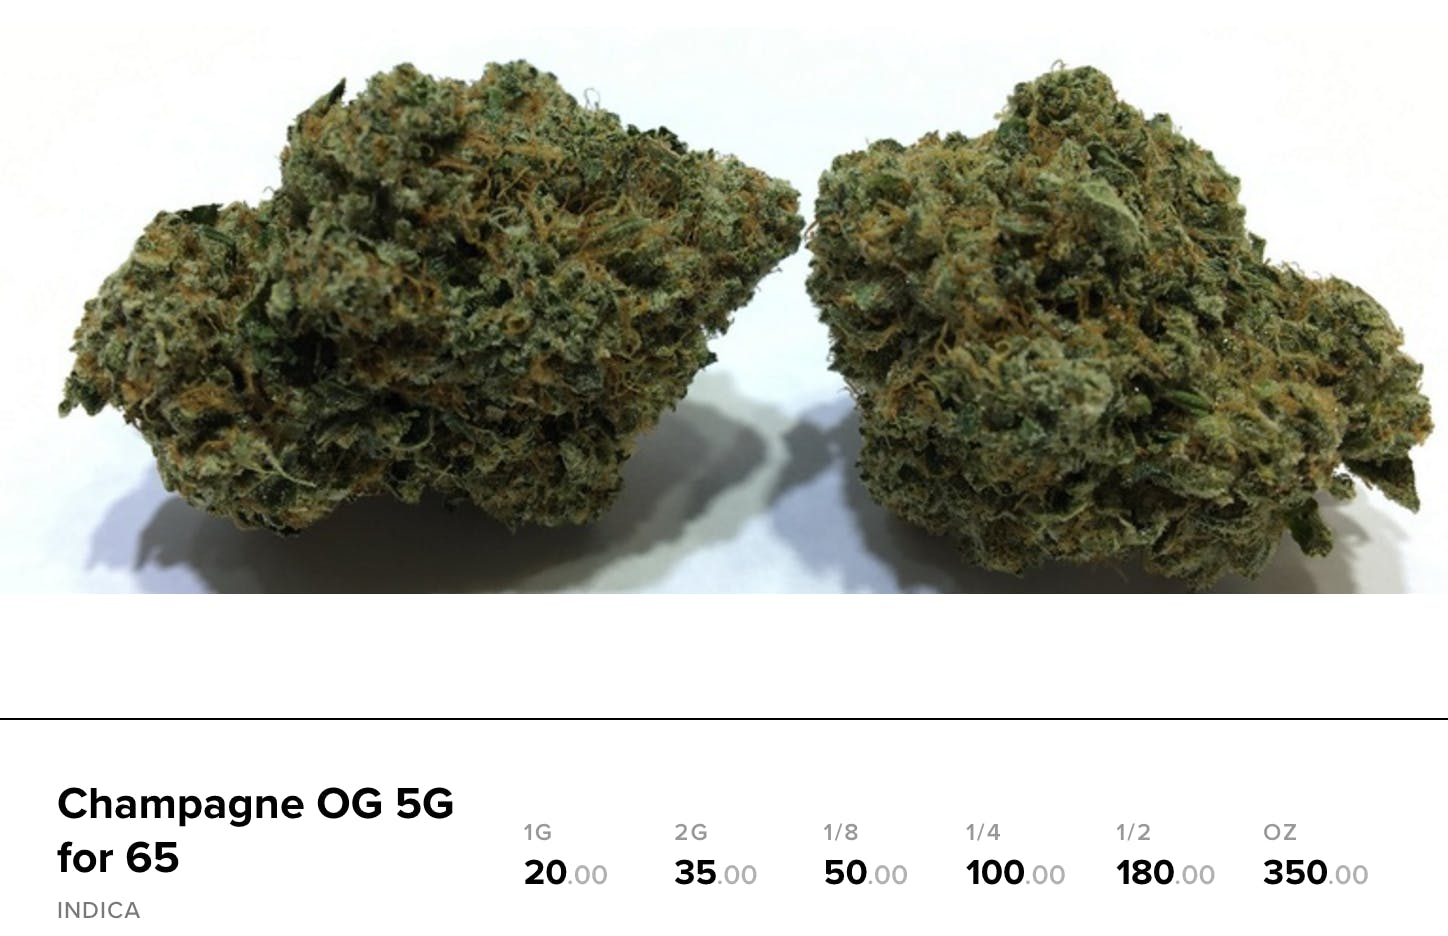 How much does a gram of weed cost : champagne og